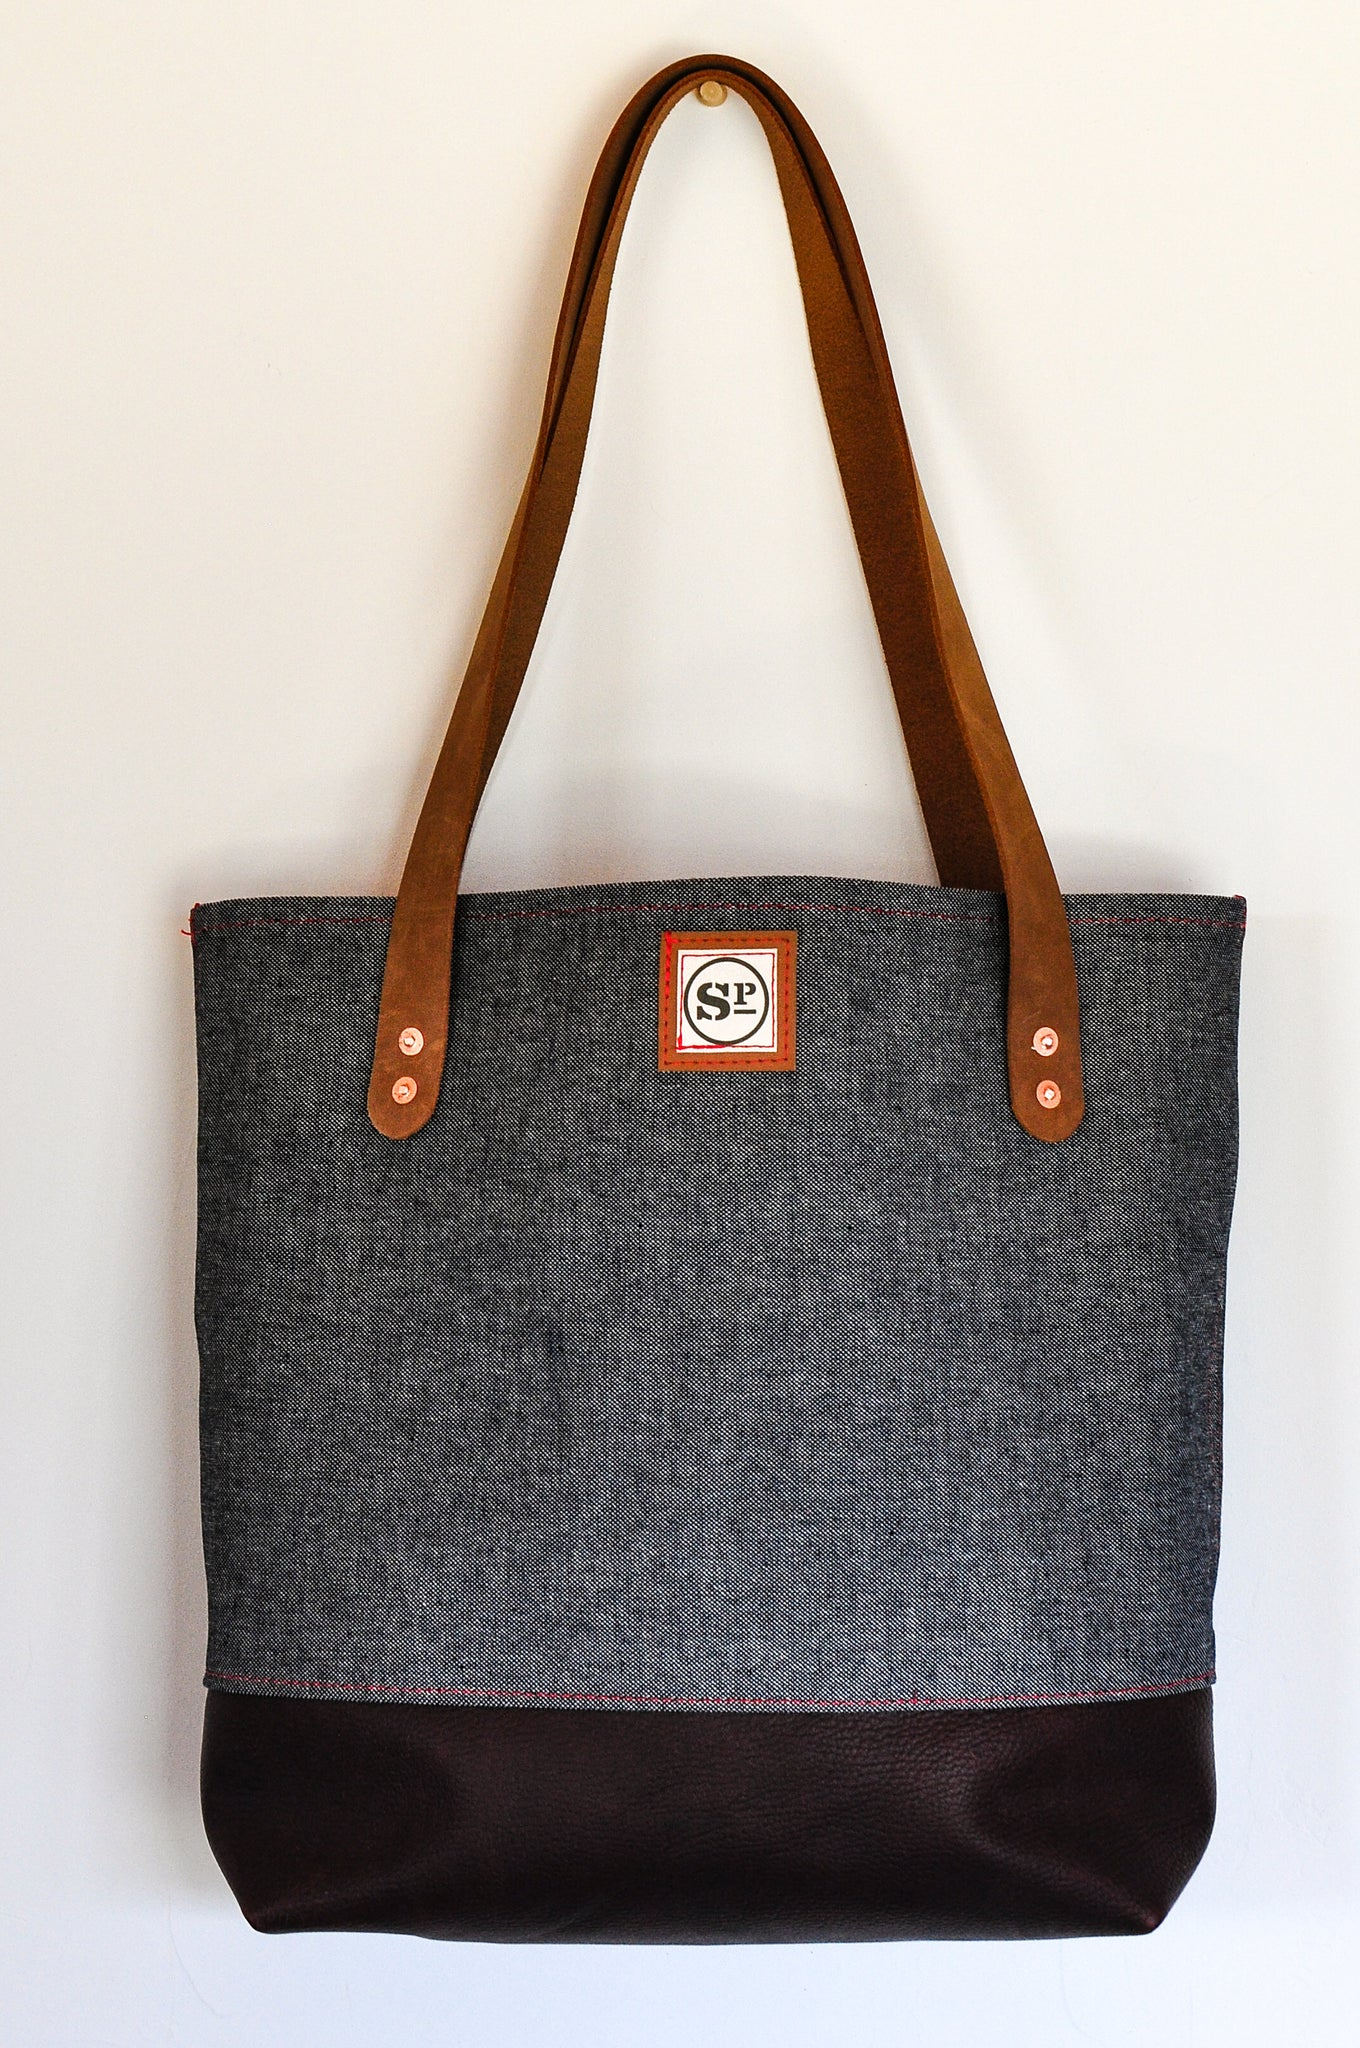 Selvedge Denim Tote with Leather Handles and Dark Leather Bottom